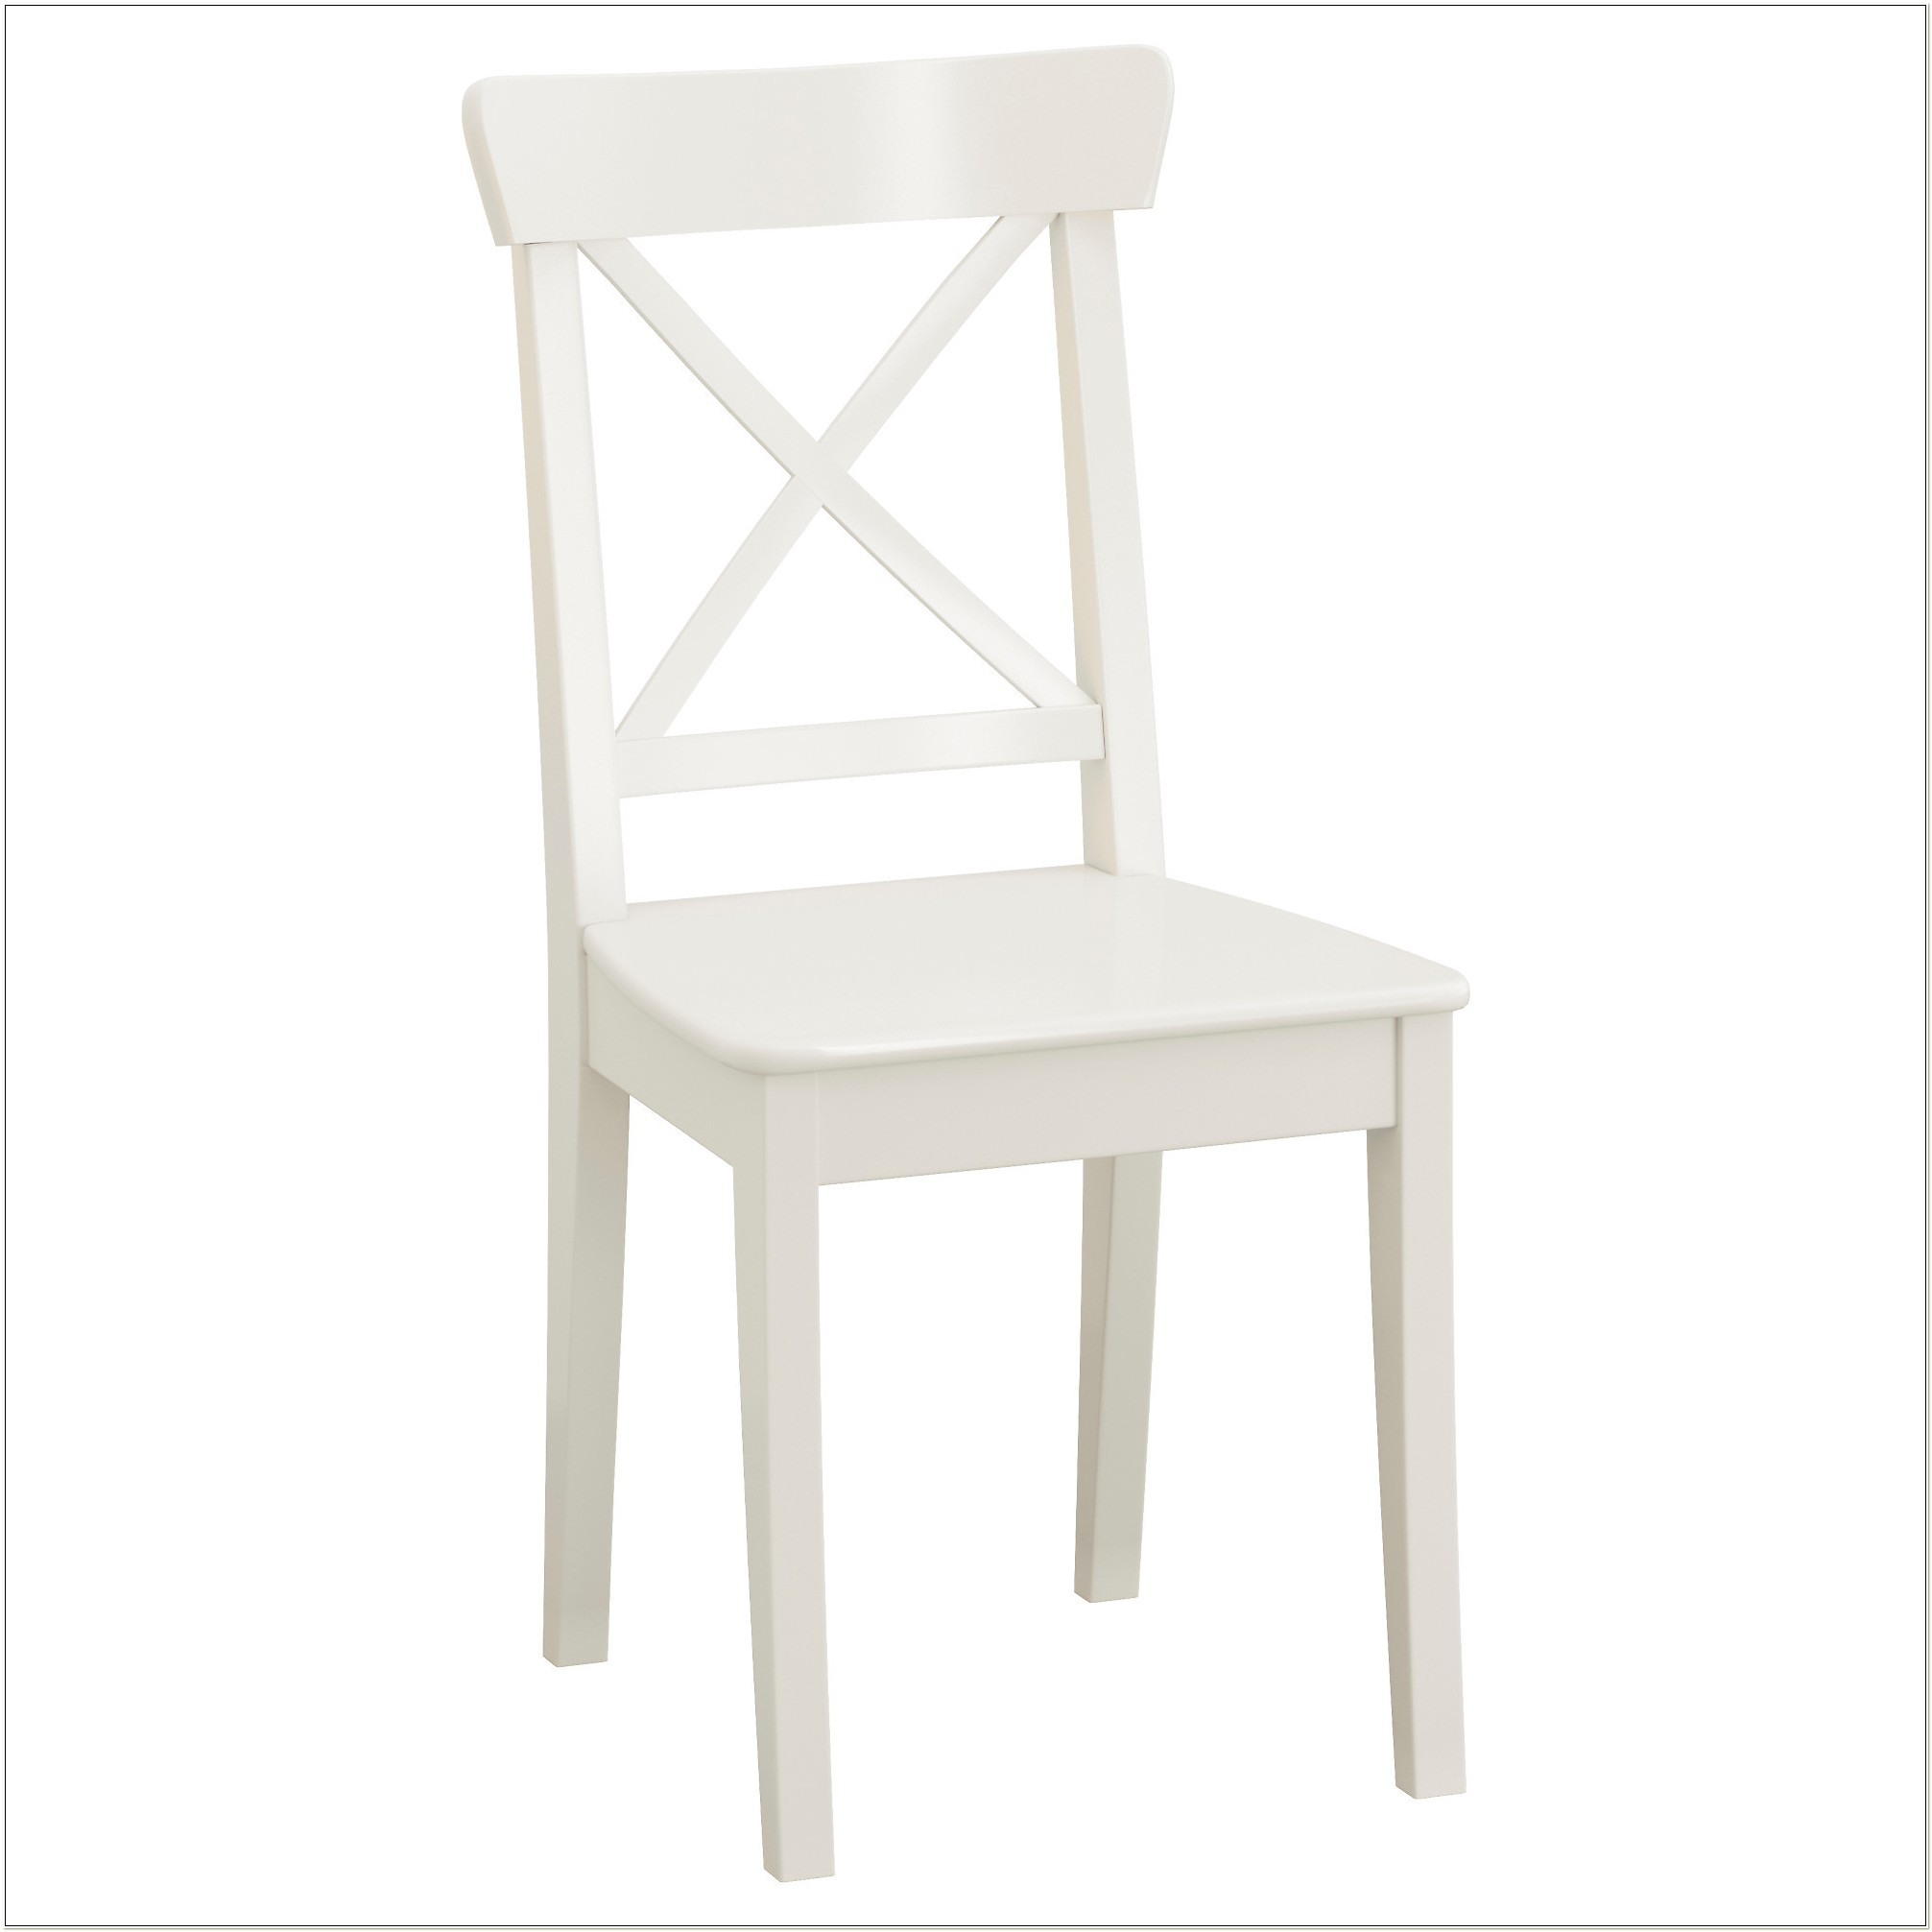 White Dining Chairs Ikea